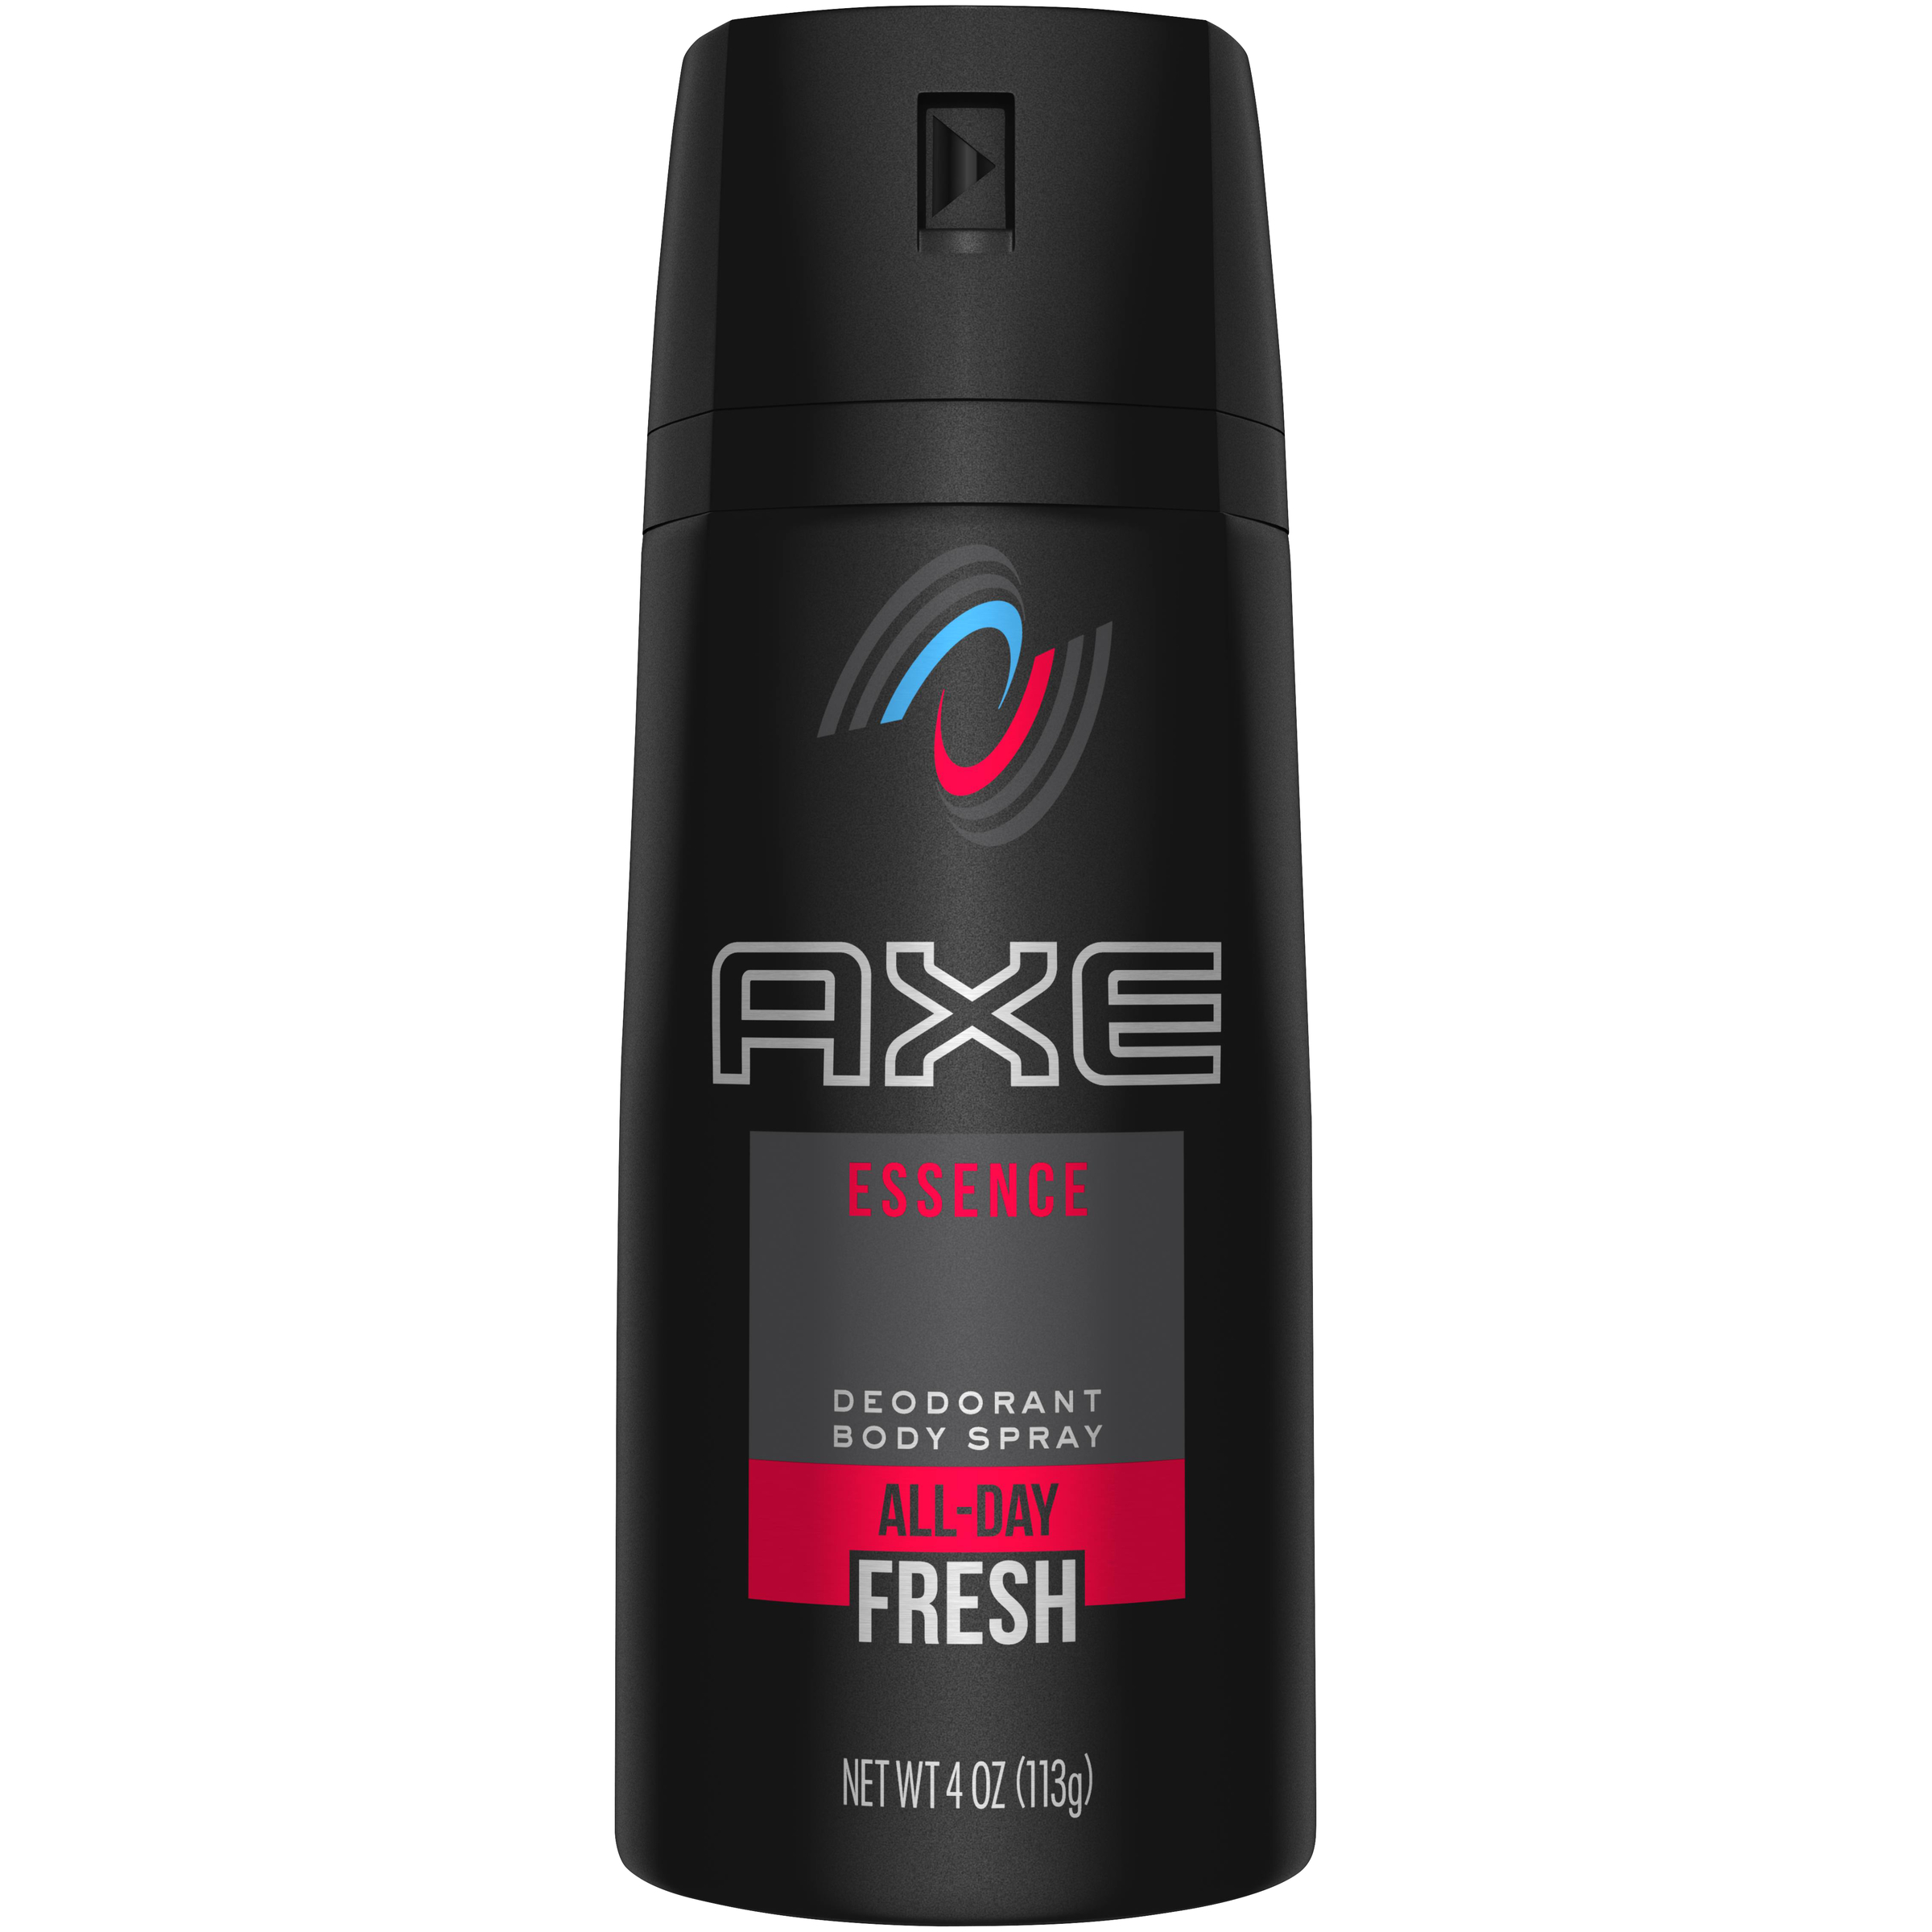 axe essence Have you ever wondered what body sprays are worth it and have a pleasant smell it's hard to buy some sometimes, and to spend the cash when you aren't sure about it this video will help you know if this scent of axe body spray is right for you.